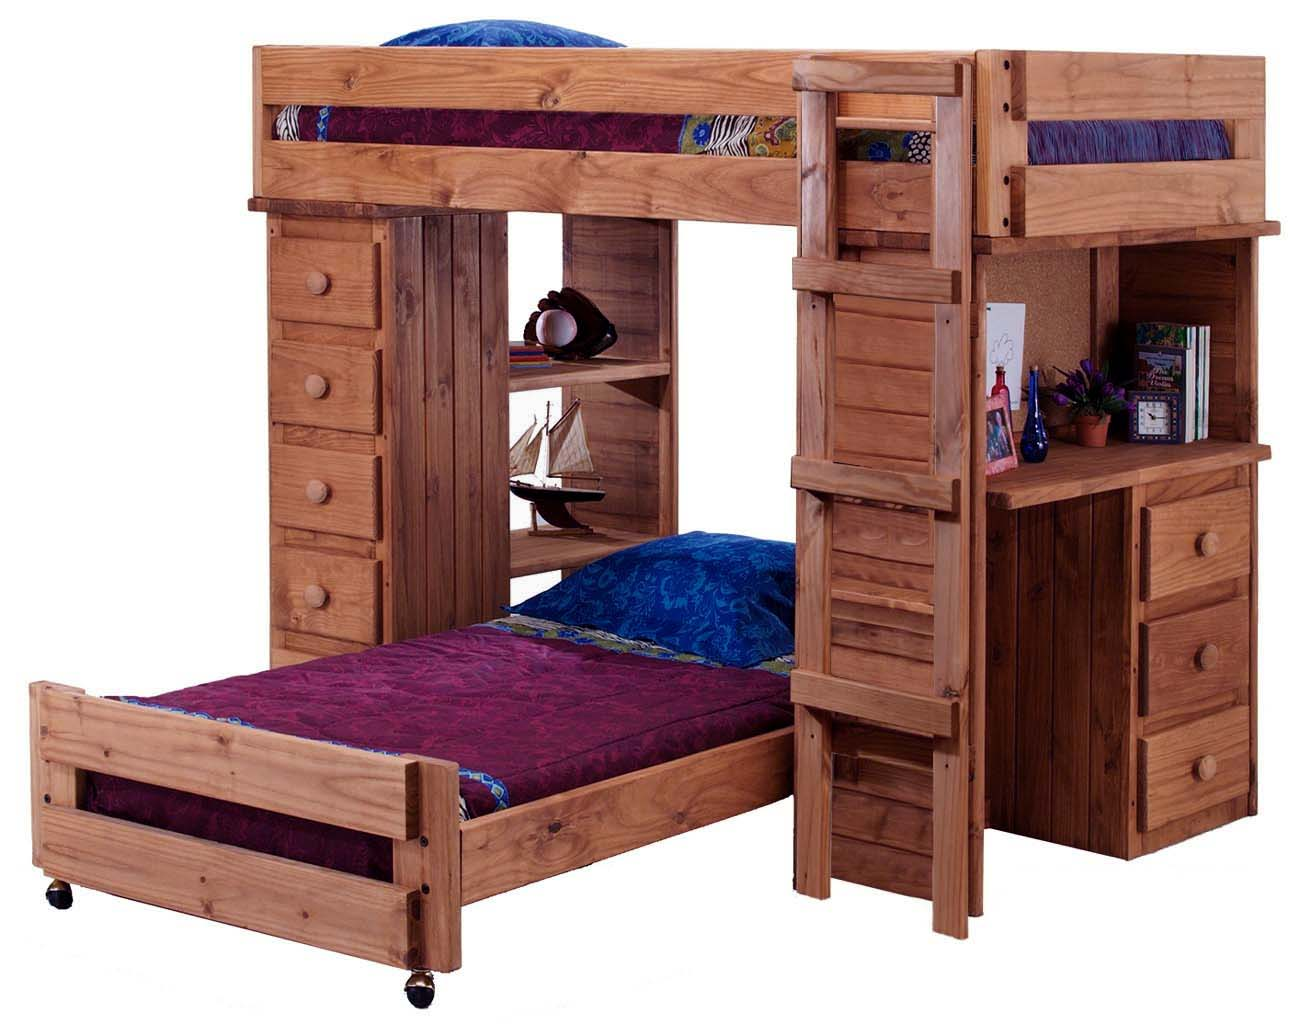 Superb img of Wooden Twin Over Twin Student Loft Bed with Desk Chest & Bookcase  with #1C2E6E color and 1300x1024 pixels